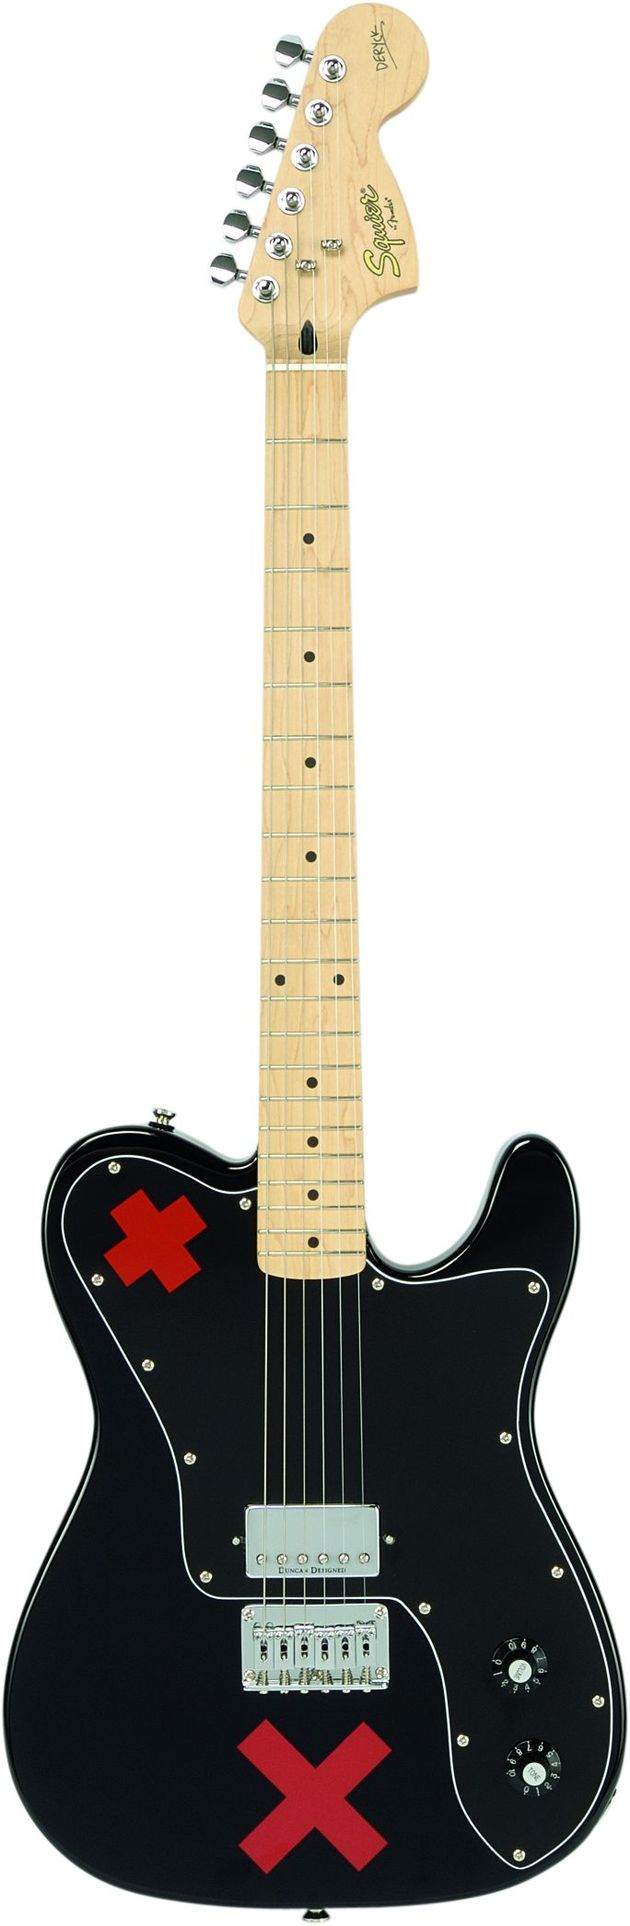 A Tele with a difference.